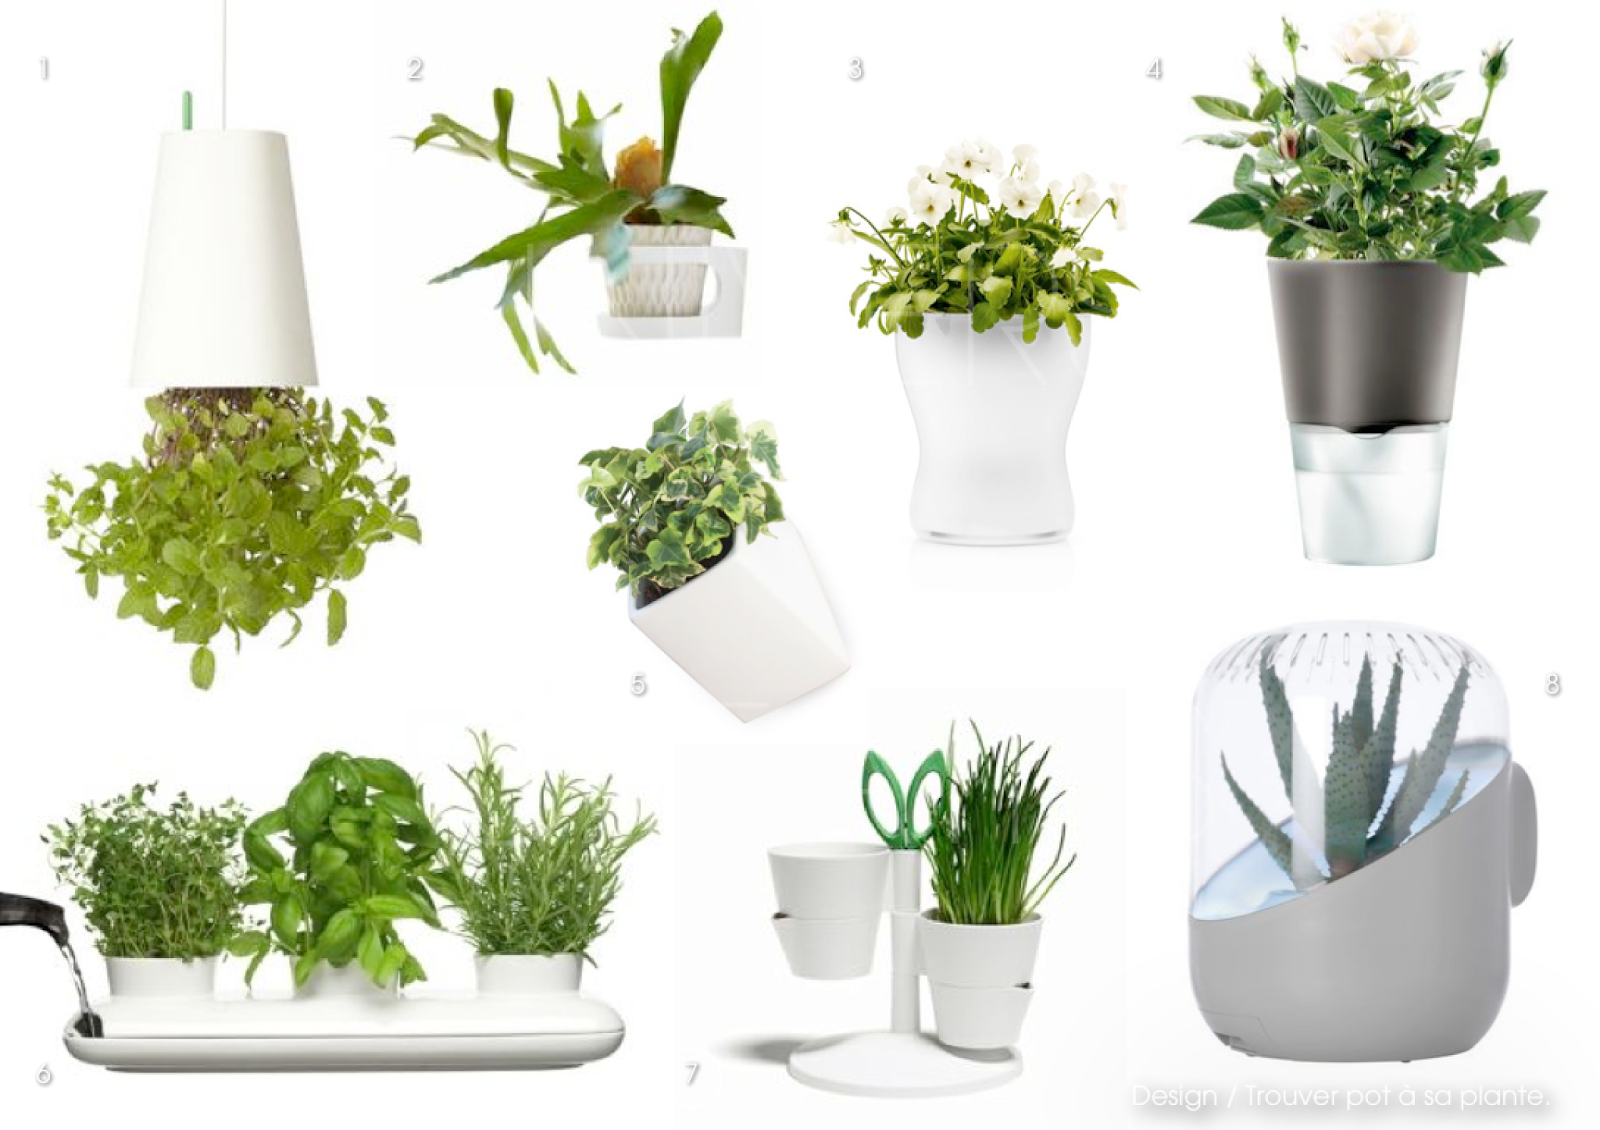 Univers creatifs design trouver pot sa plante for Pot de decoration interieur